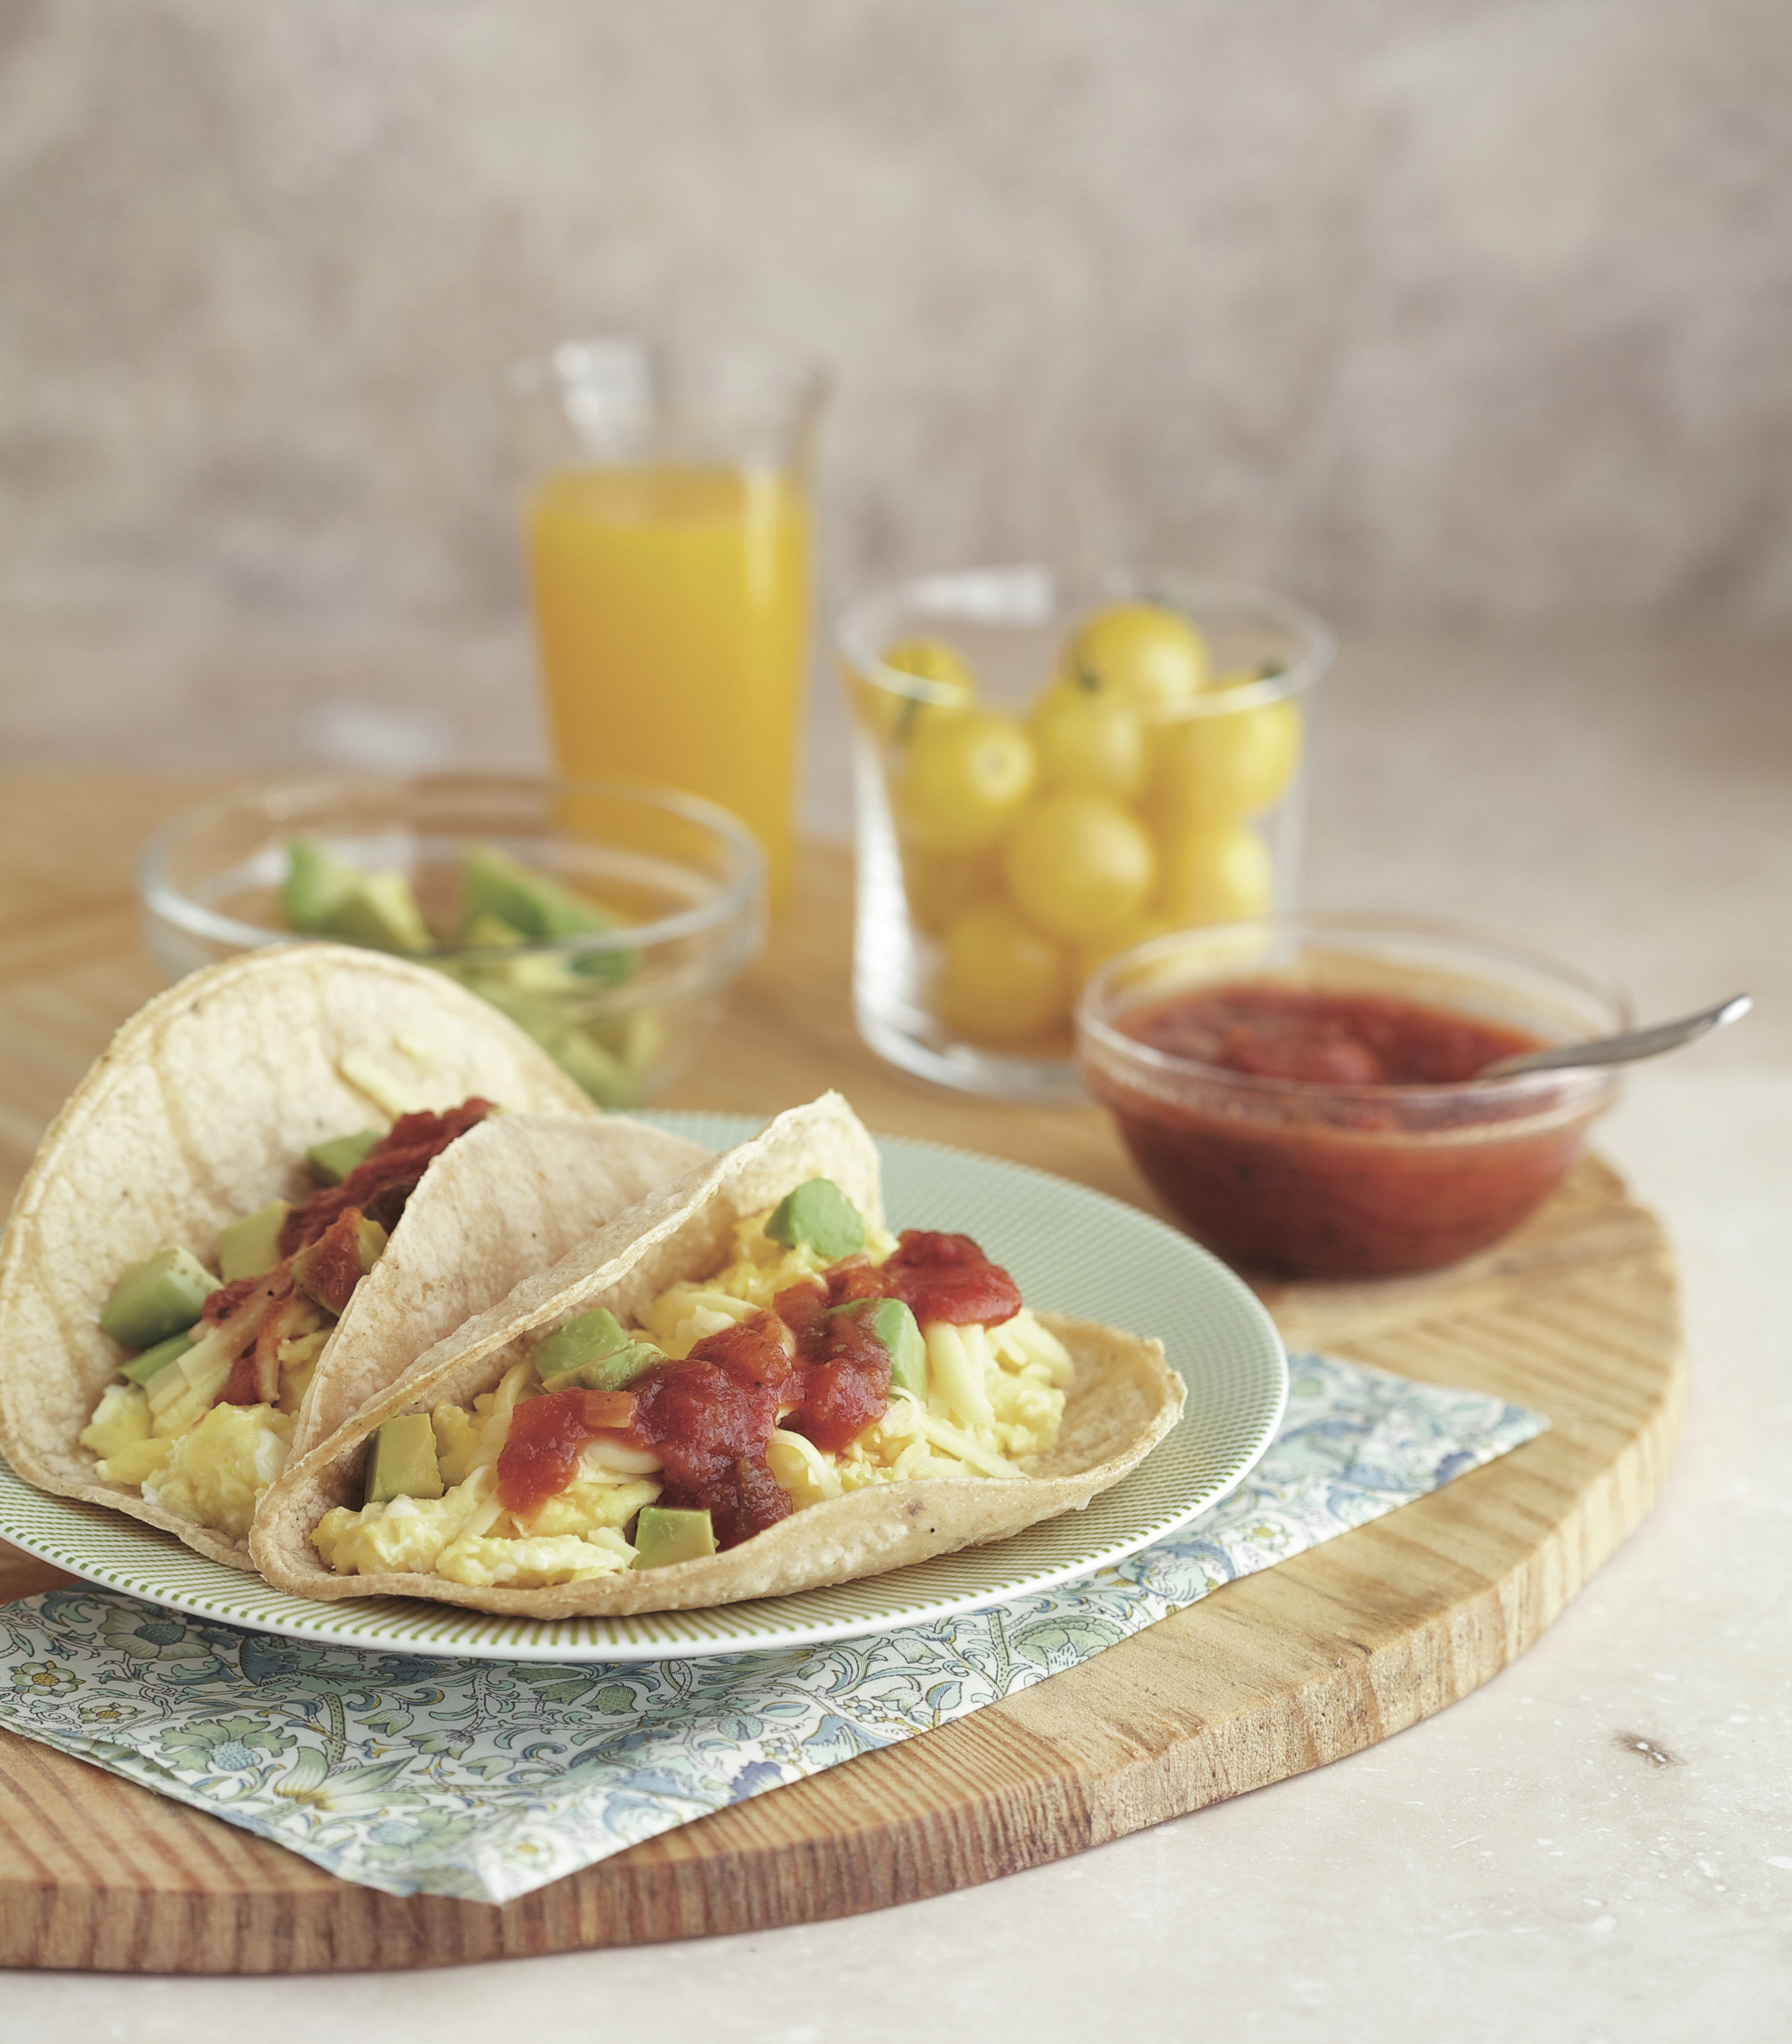 breakfast tacos from first cookbook